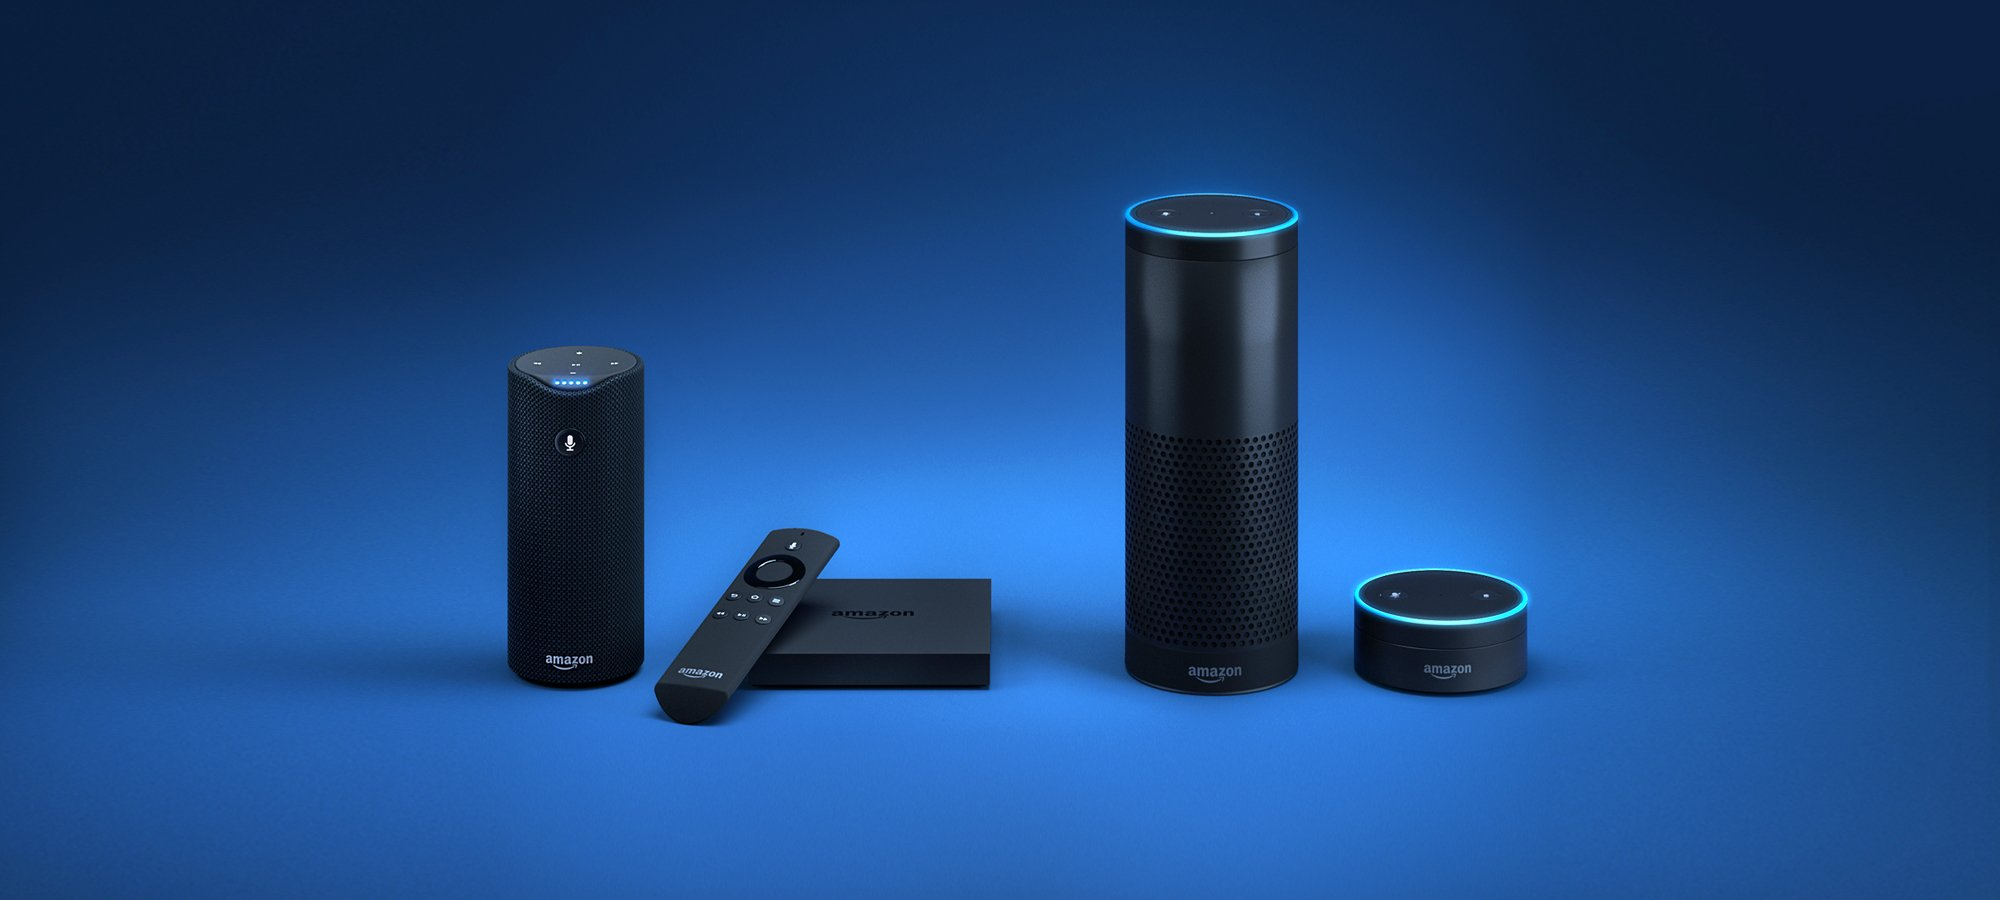 amazon-alexa-1 Who Are The Top-Selling Brands in the Smart Home Market?